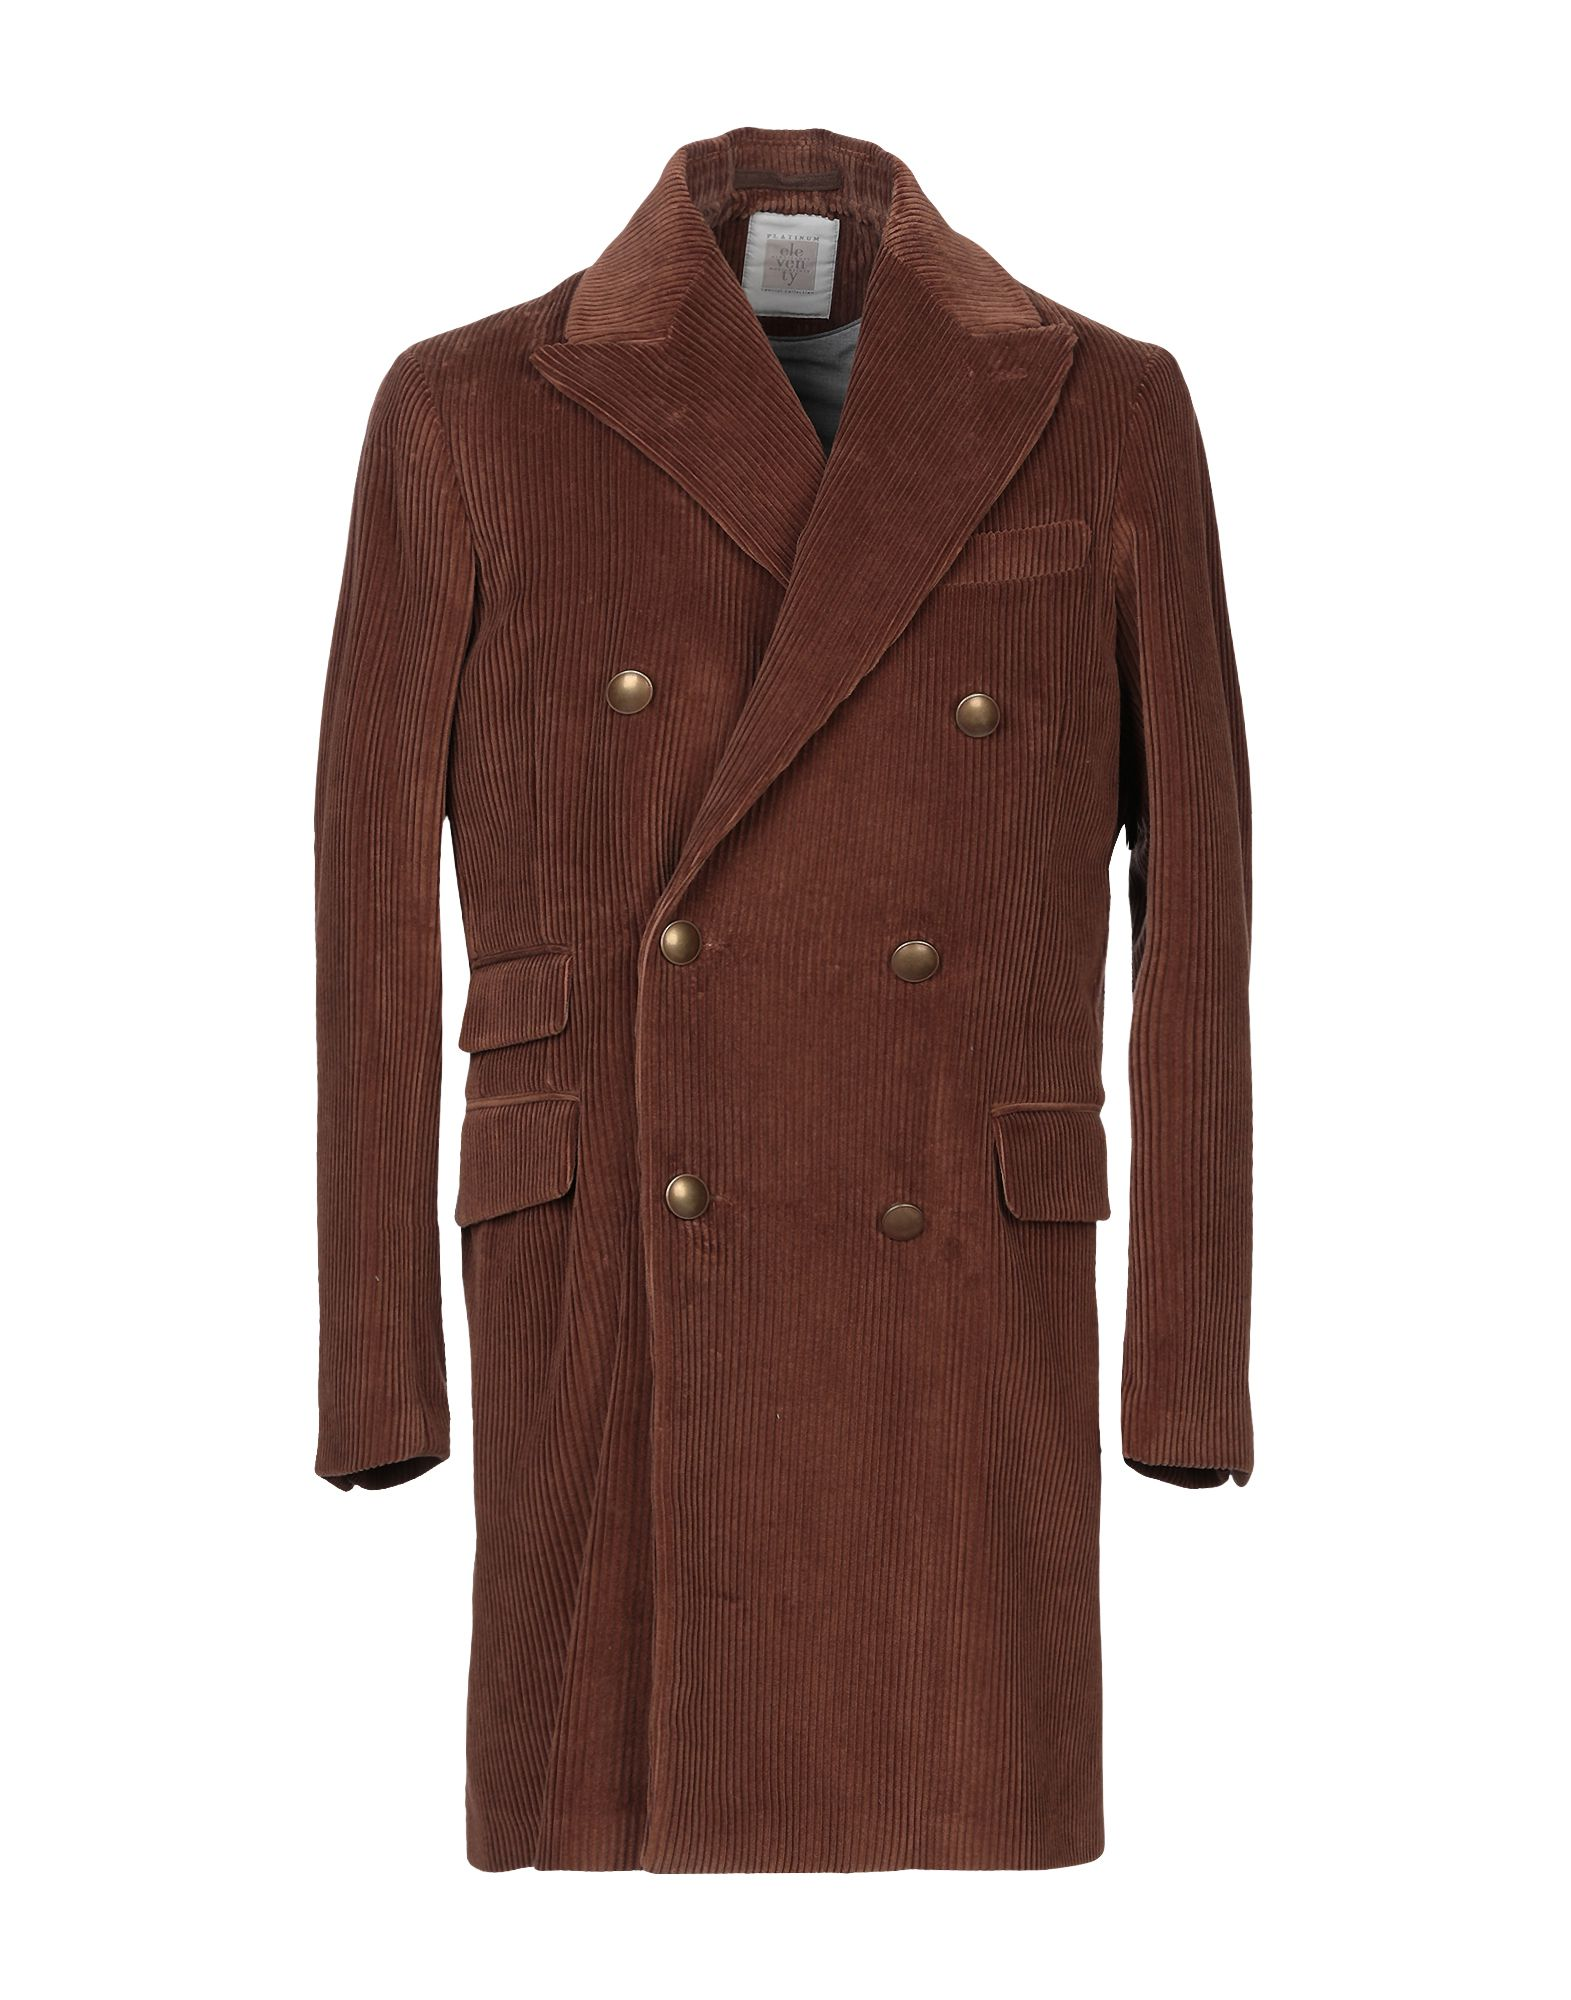 ELEVENTY Coats. ribbed, velvet, no appliqués, solid color, double-breasted, 3 buttons, lapel collar, multipockets, long sleeves, buttoned cuffs, rear slit, semi-lined, contains non-textile parts of animal origin. 96% Cotton, 4% Cashmere